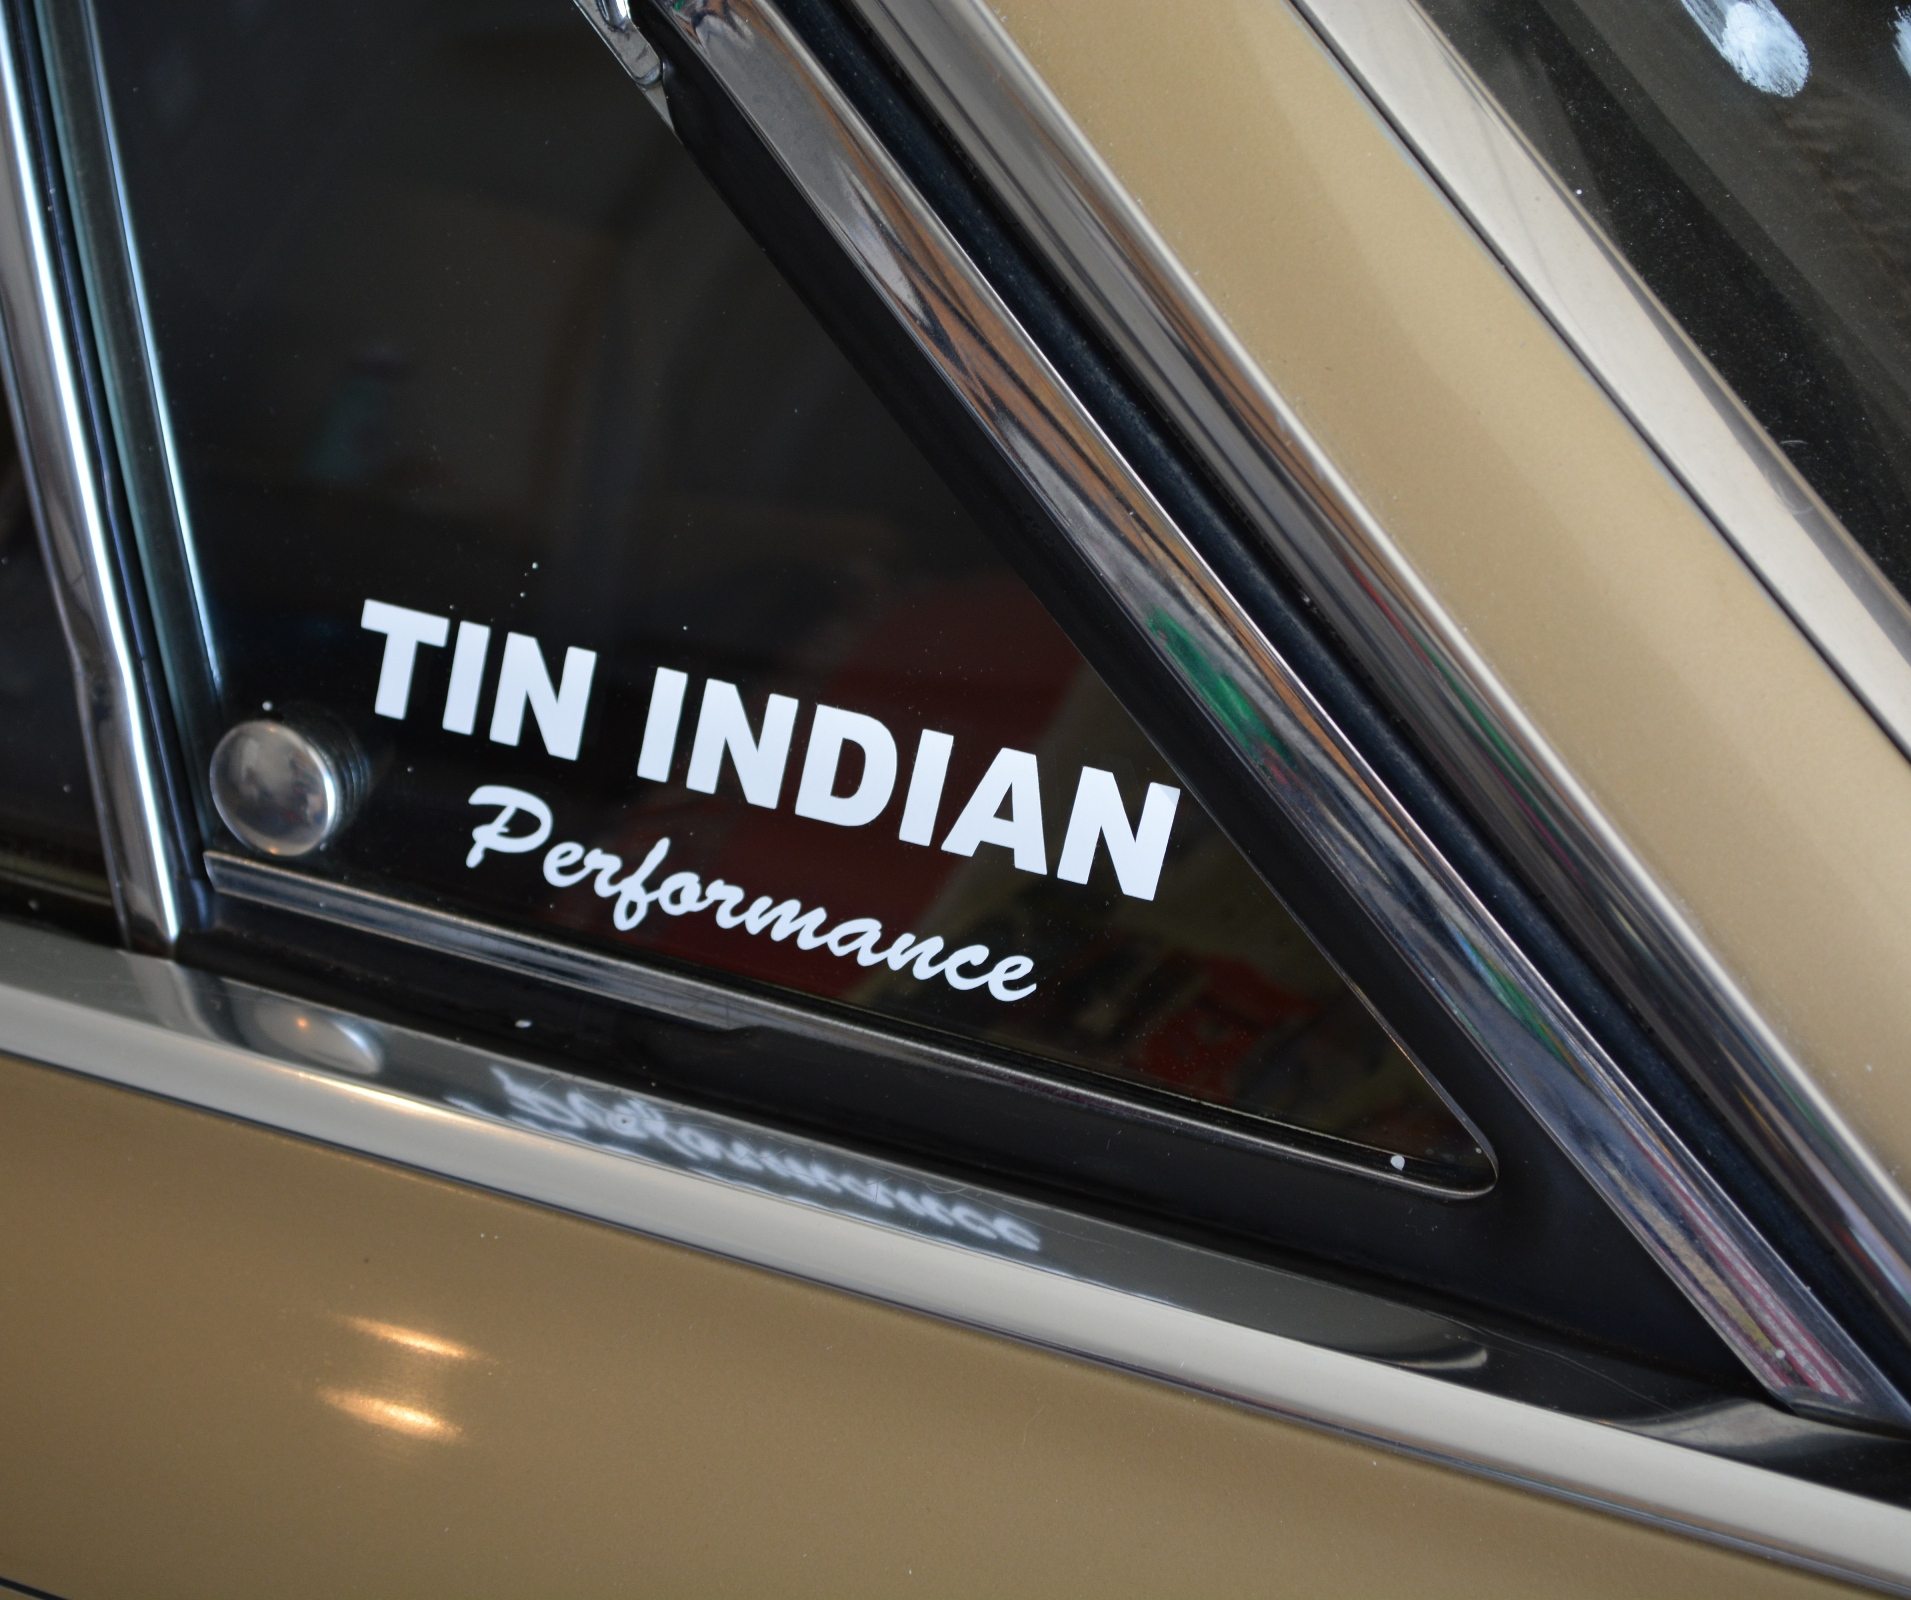 Tin Indian Performance Pontiac contingency sticker on car